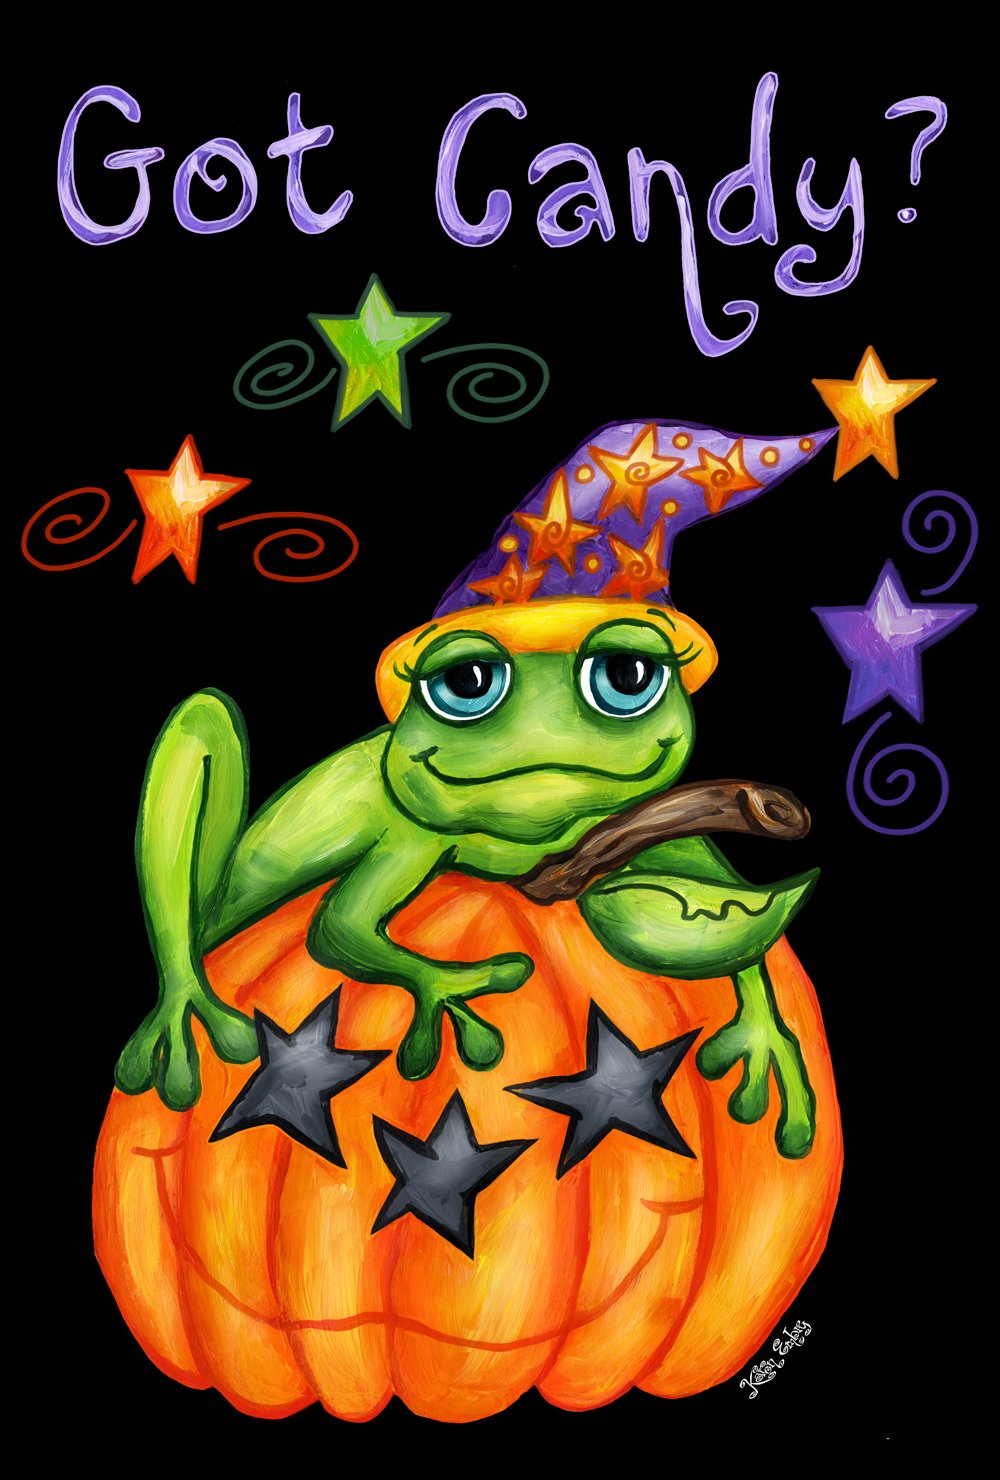 Toland Home Garden Toad Candy 12.5 x 18 Inch Decorative Colorful Halloween Pumpkin Witch Frog Garden Flag